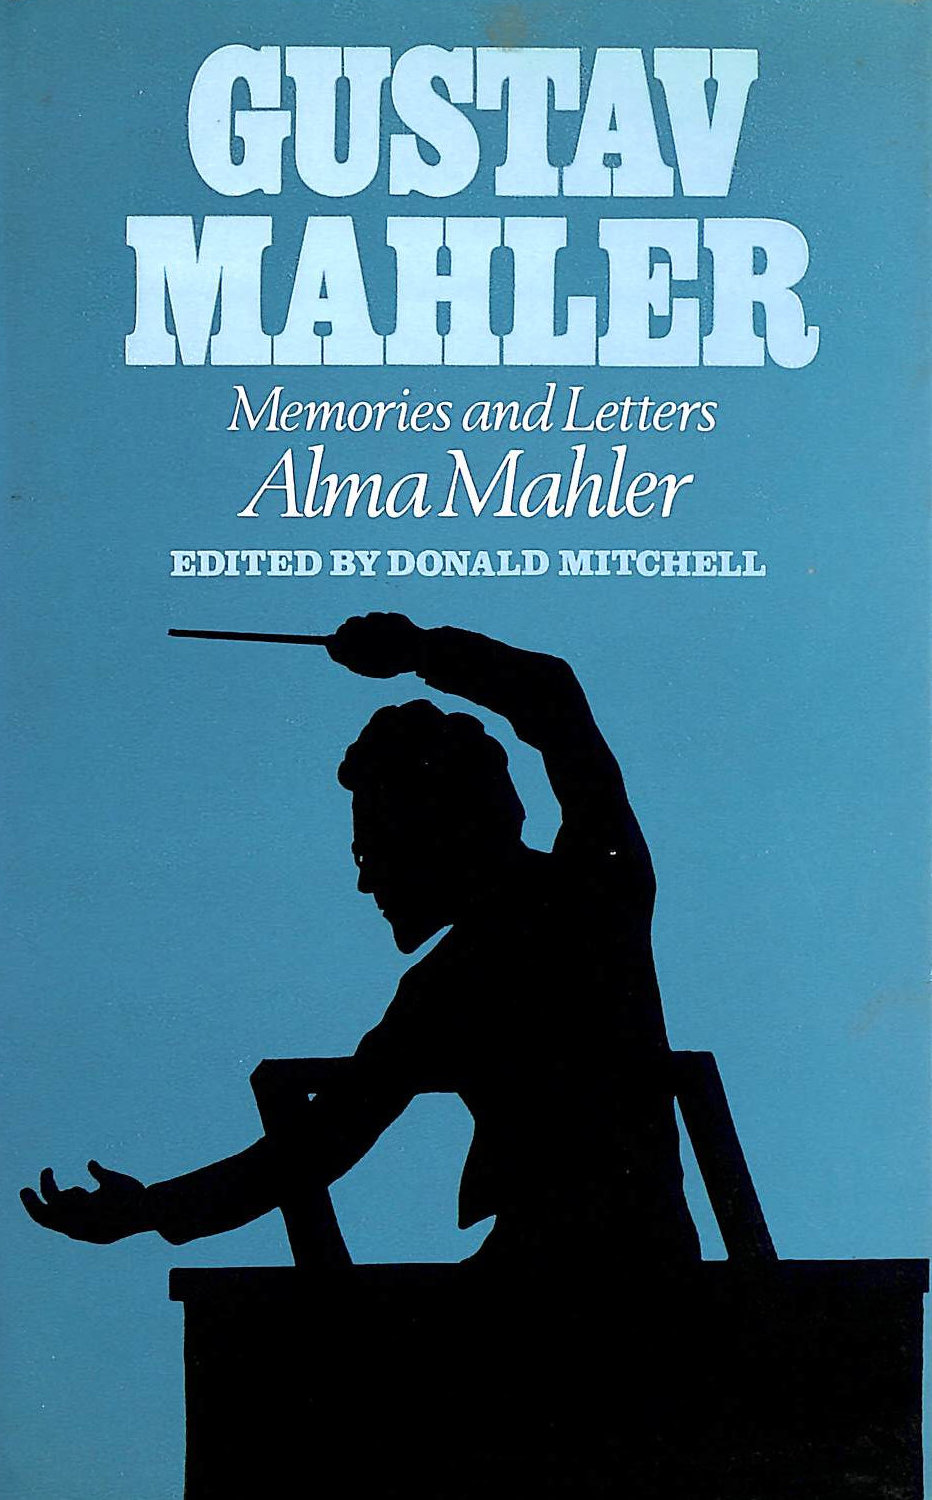 Image for Gustav Mahler: Memories and Letters